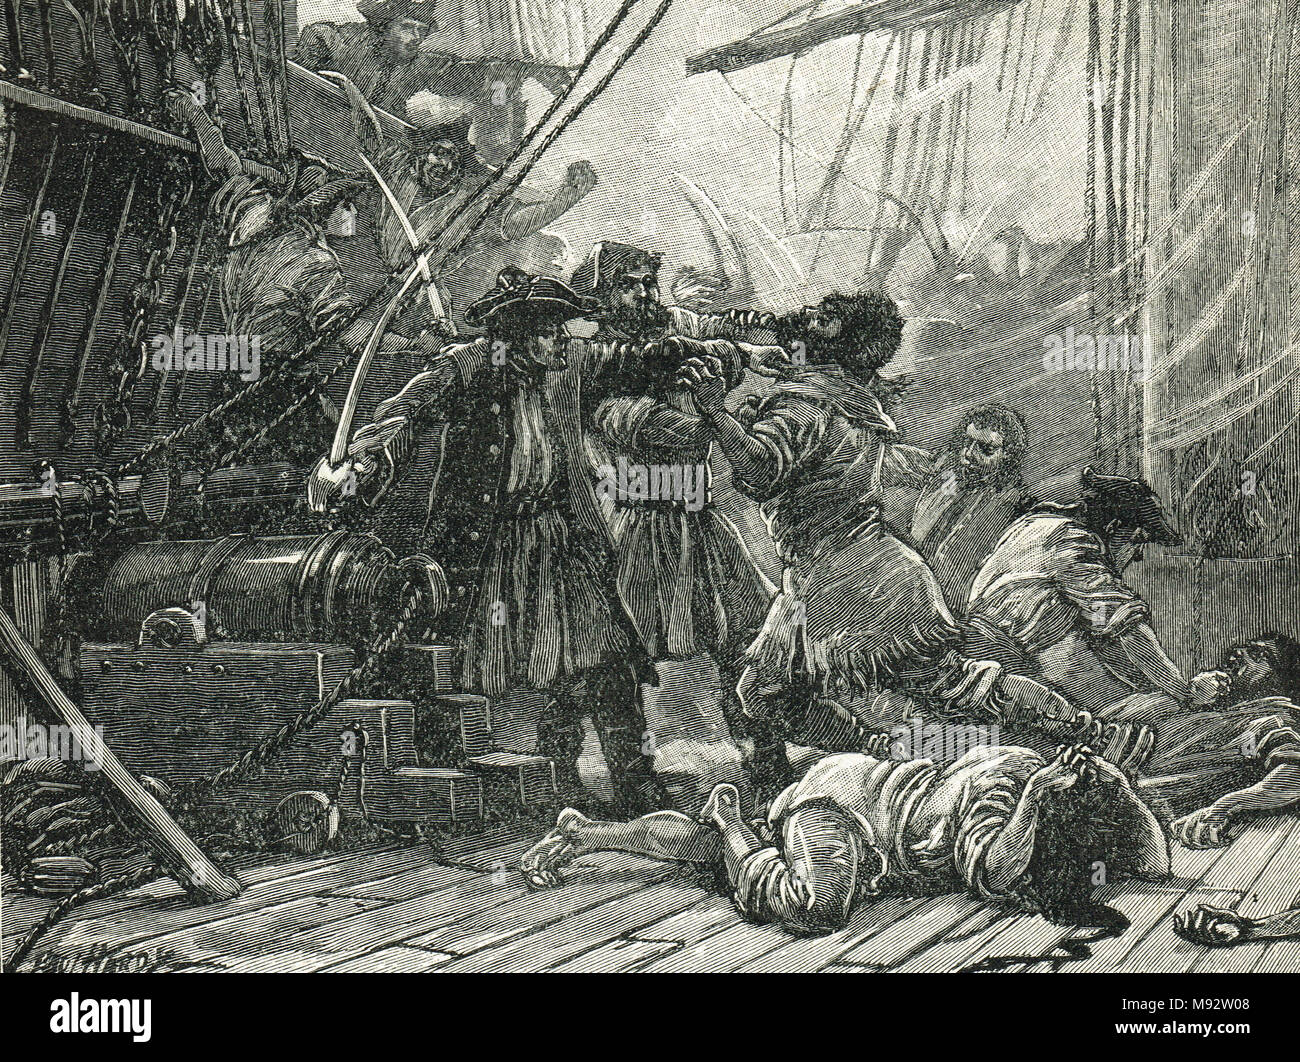 Revenue Cutters capturing an American smuggling vessel 1765 - Stock Image